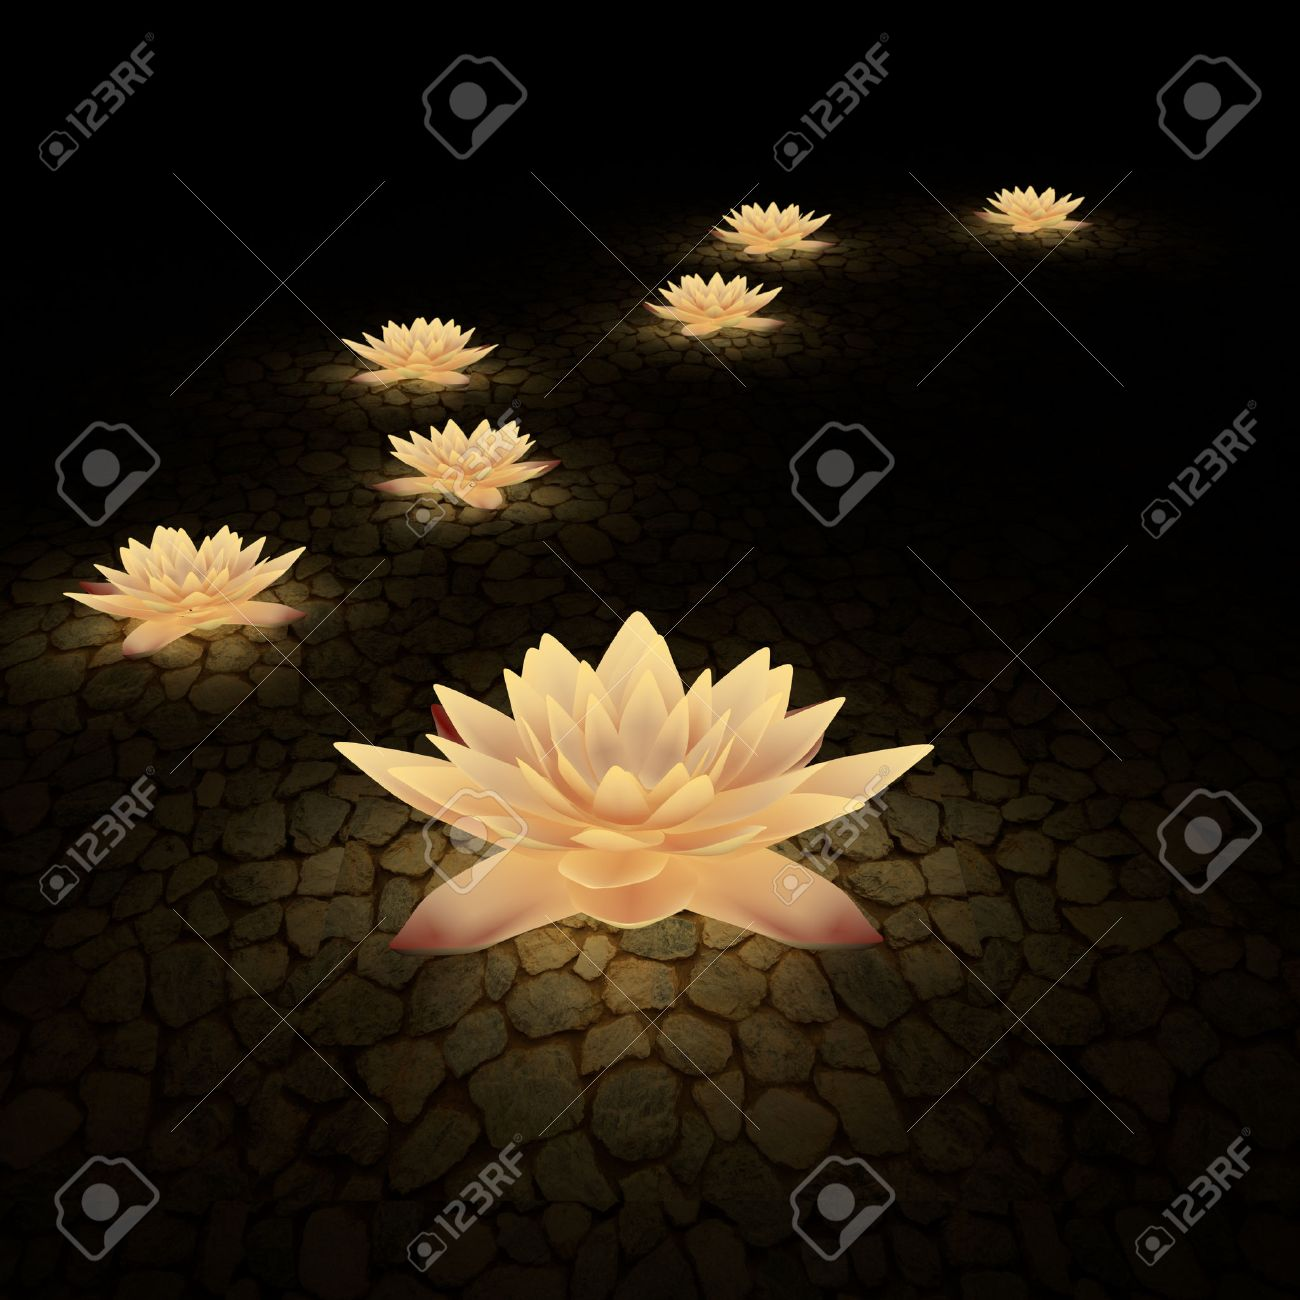 3d Lotus Flower In The Background At Night Stock Photo Picture And